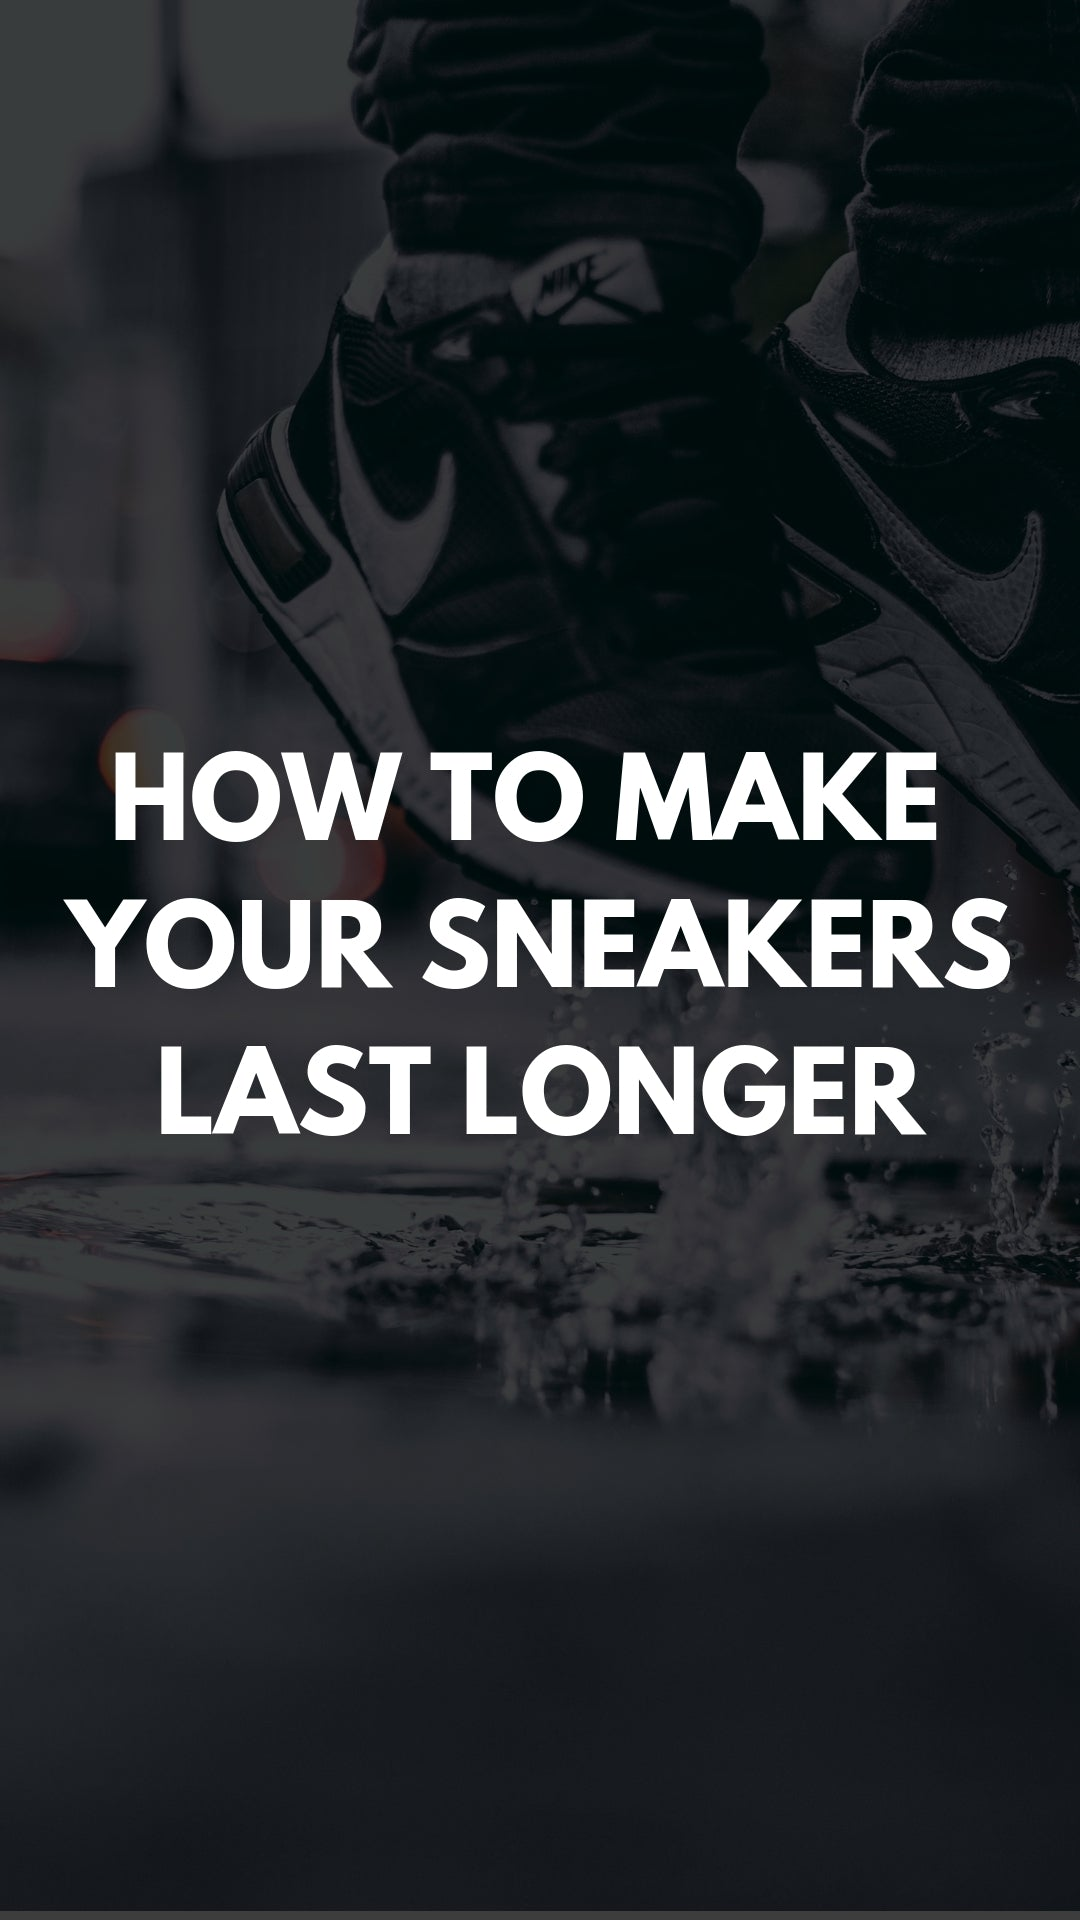 Expanding The Lifespan On Your Sneakers